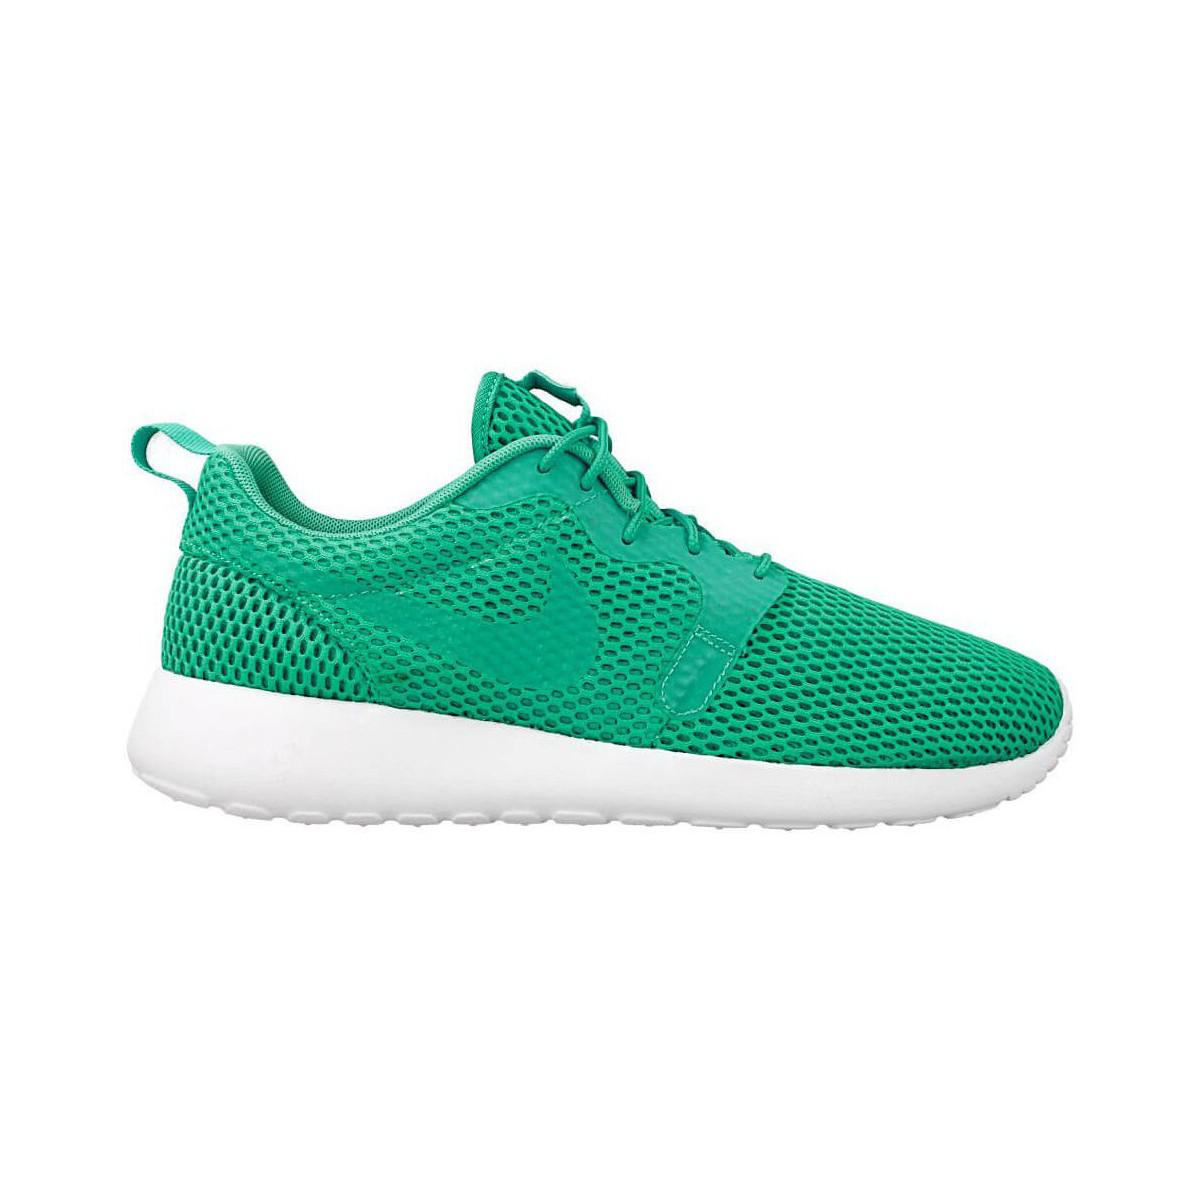 8f8236930968c Nike Roshe One Hyp Br Men s Shoes (trainers) In Green in Green for ...